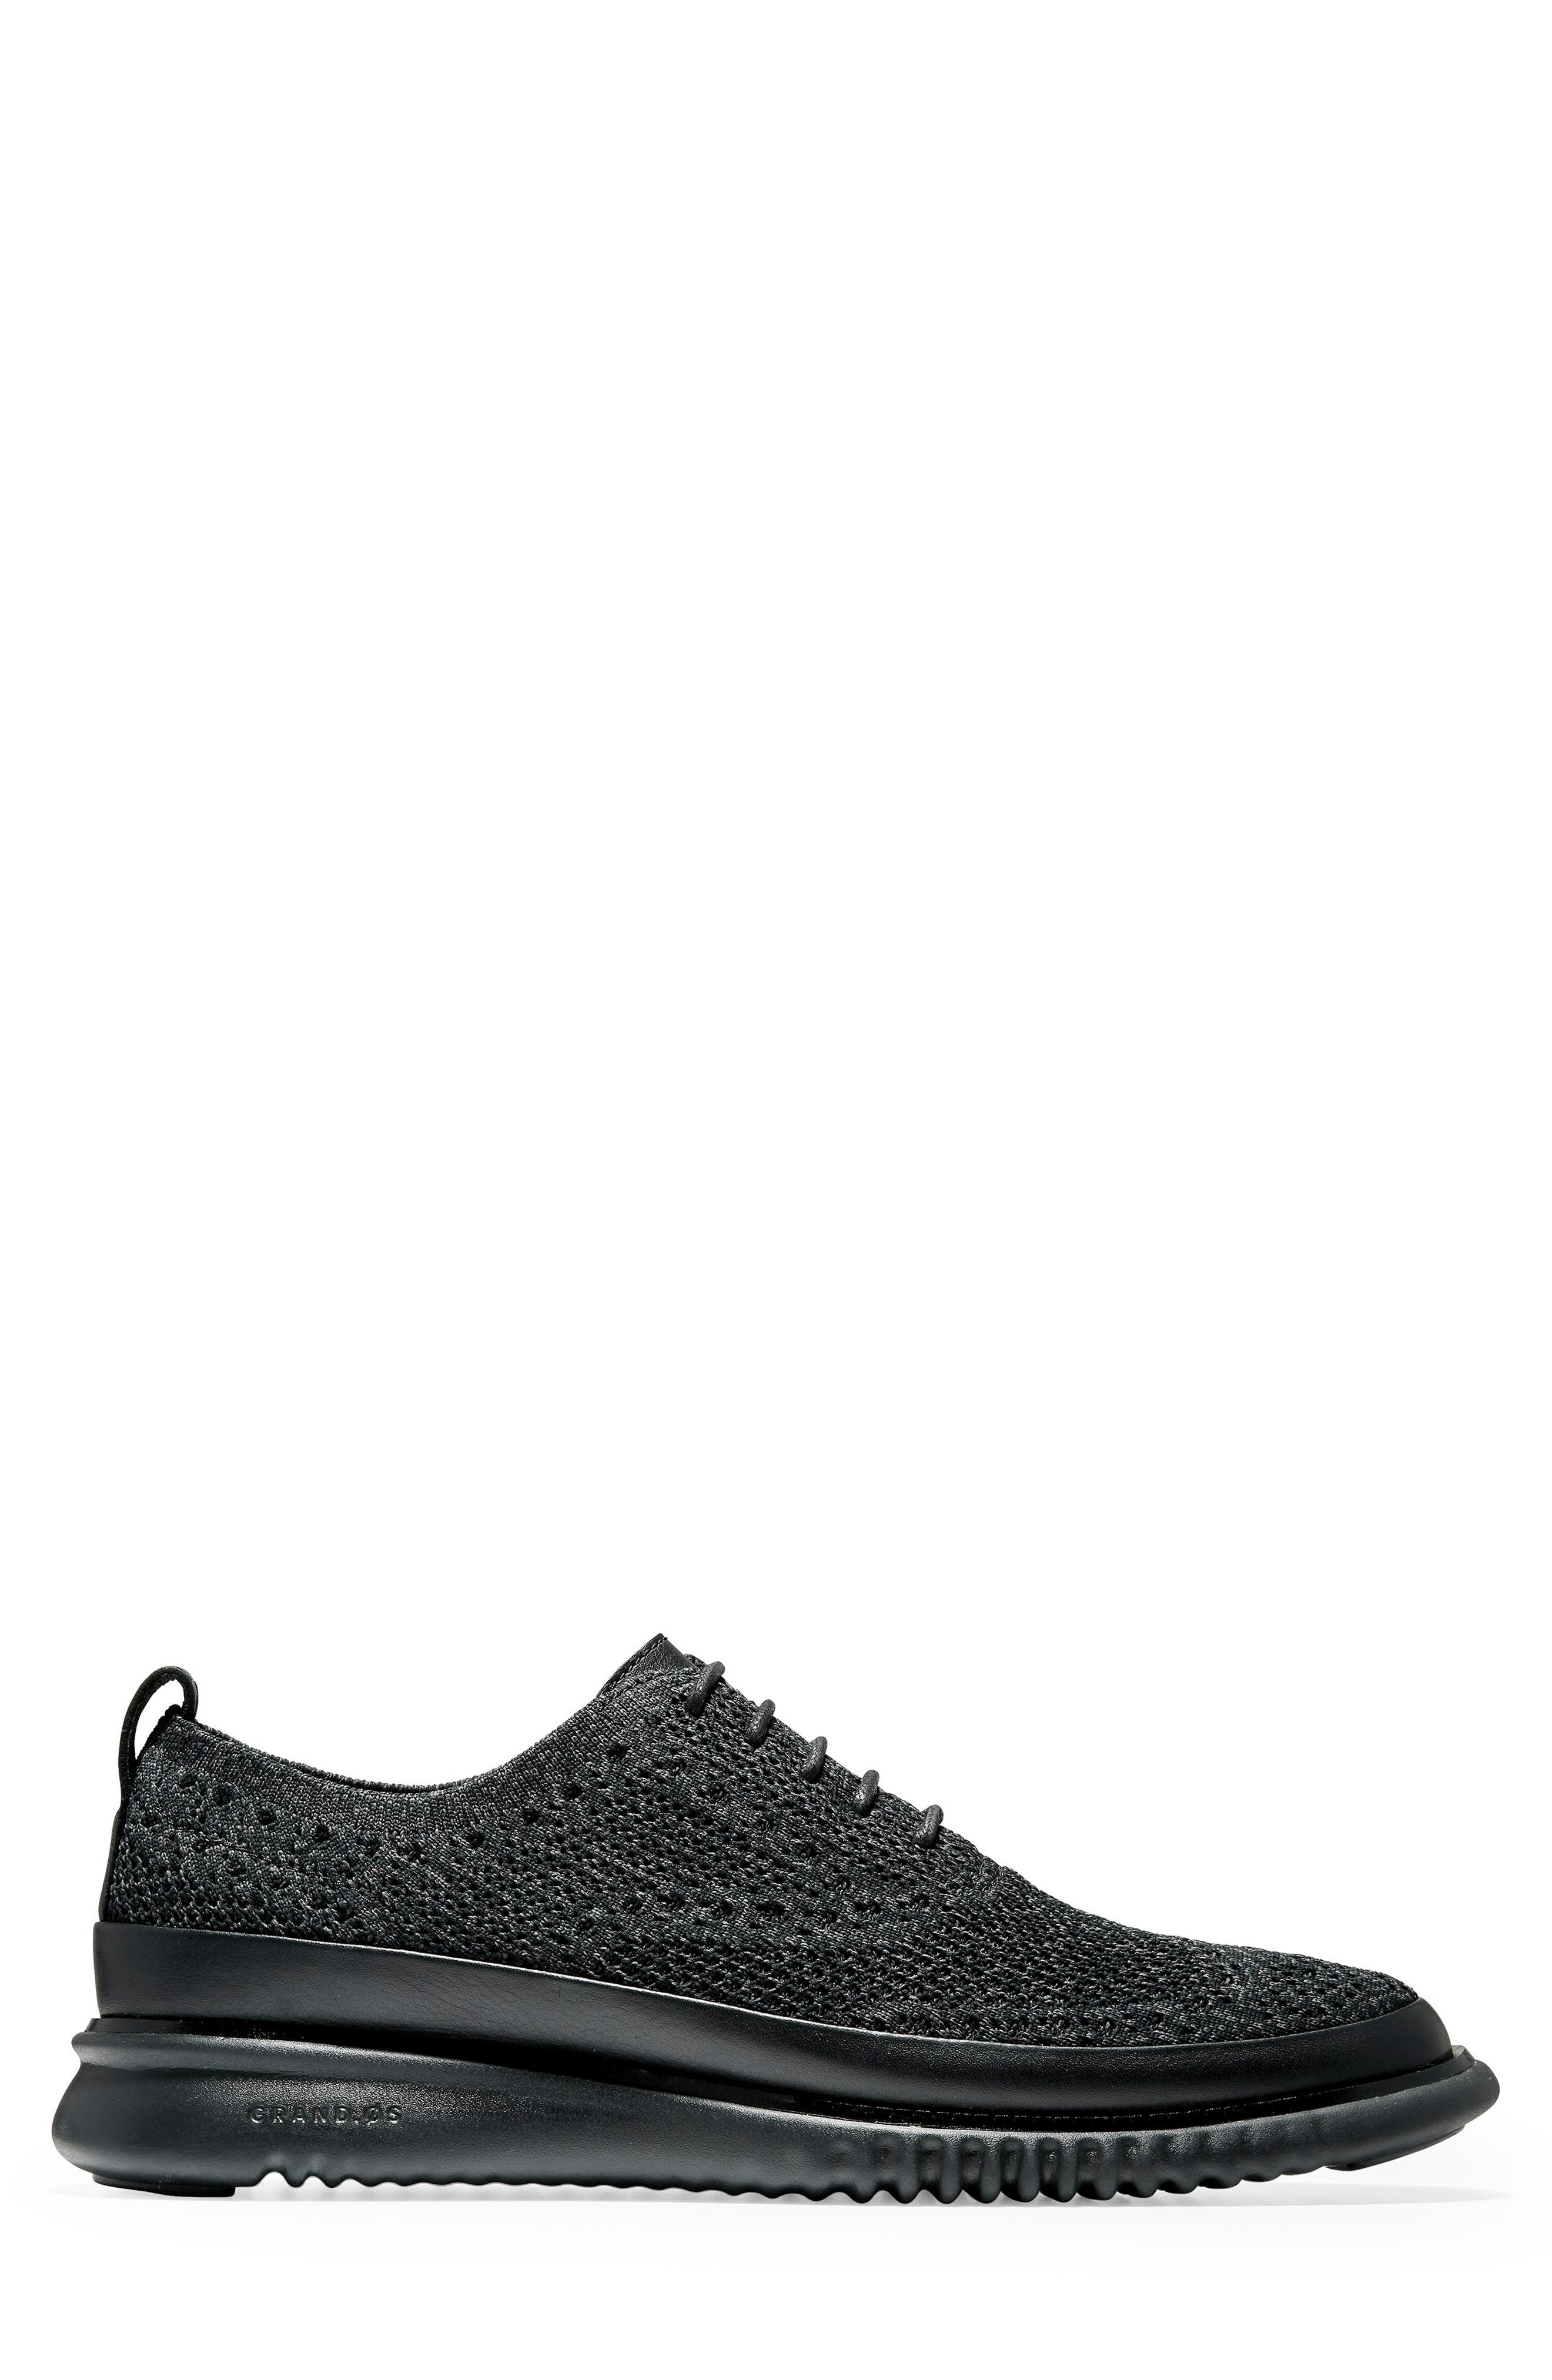 2.ZeroGrand Stitchlite Water Resistant Wingtip,                             Alternate thumbnail 3, color,                             BLACK KNIT